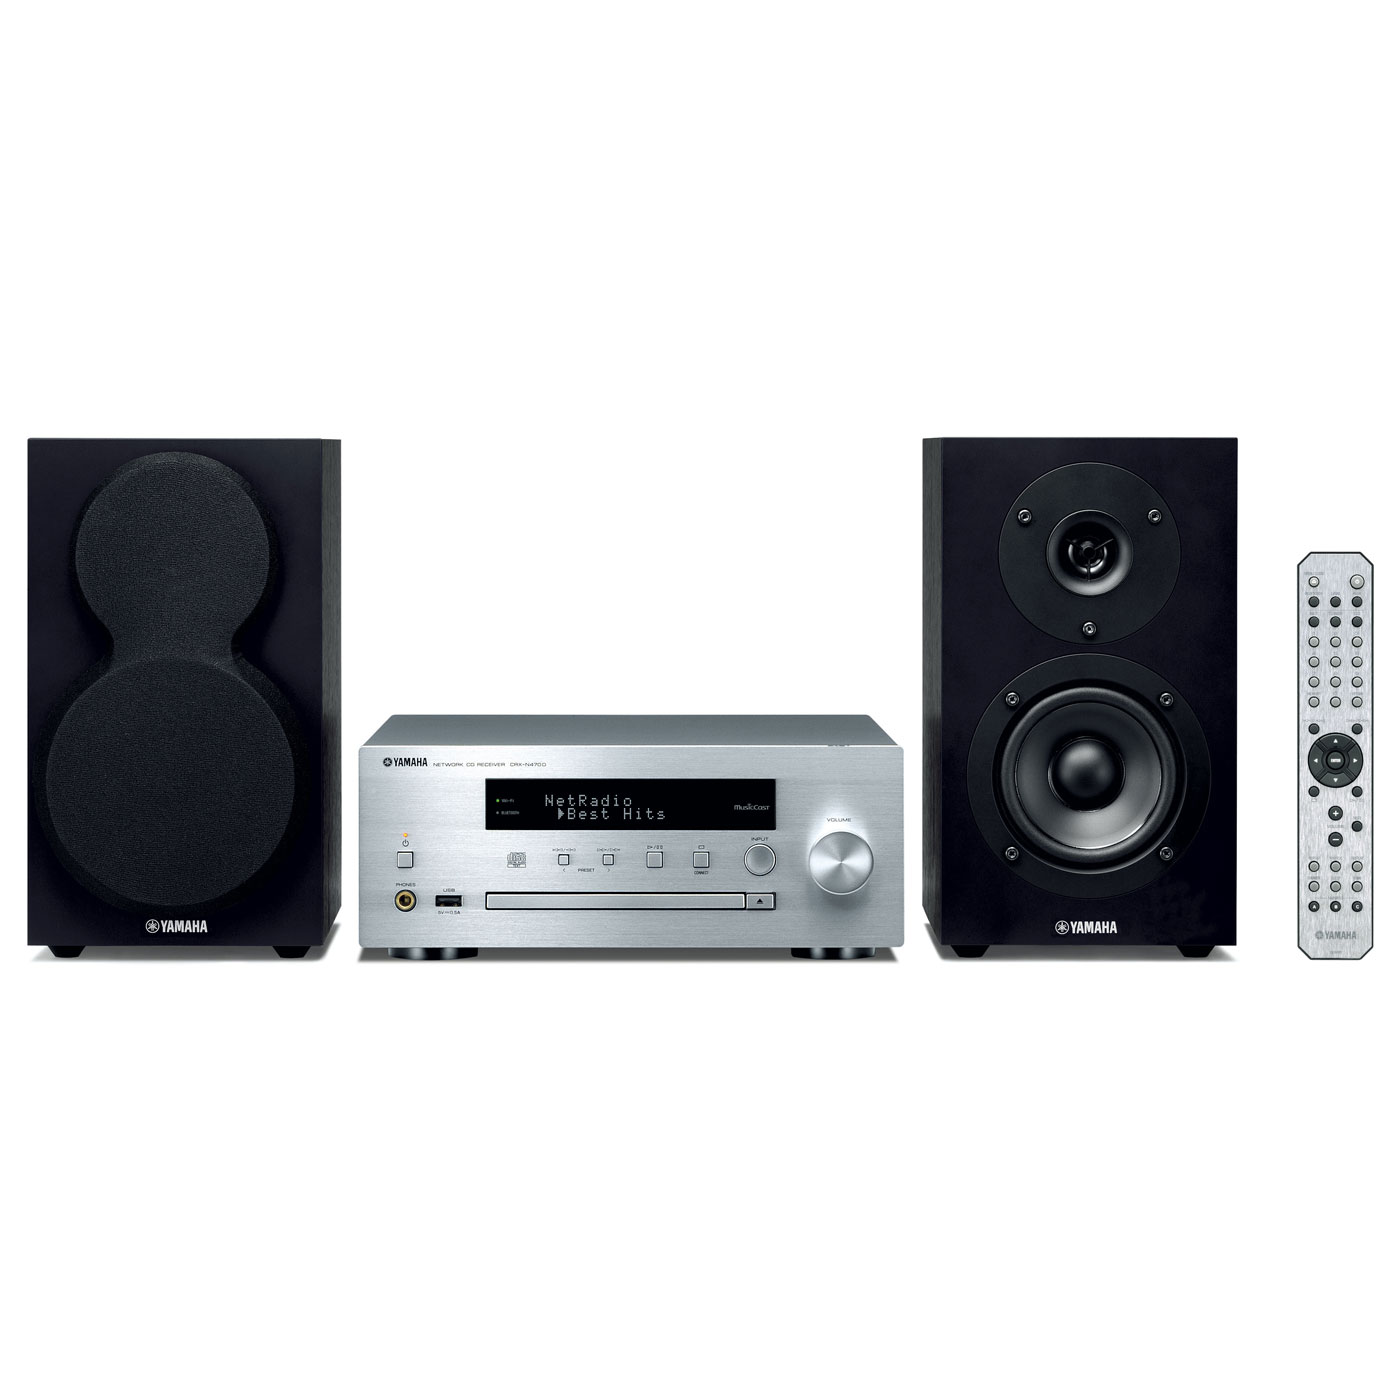 yamaha musiccast mcr n470d argent cha ne hifi yamaha sur. Black Bedroom Furniture Sets. Home Design Ideas